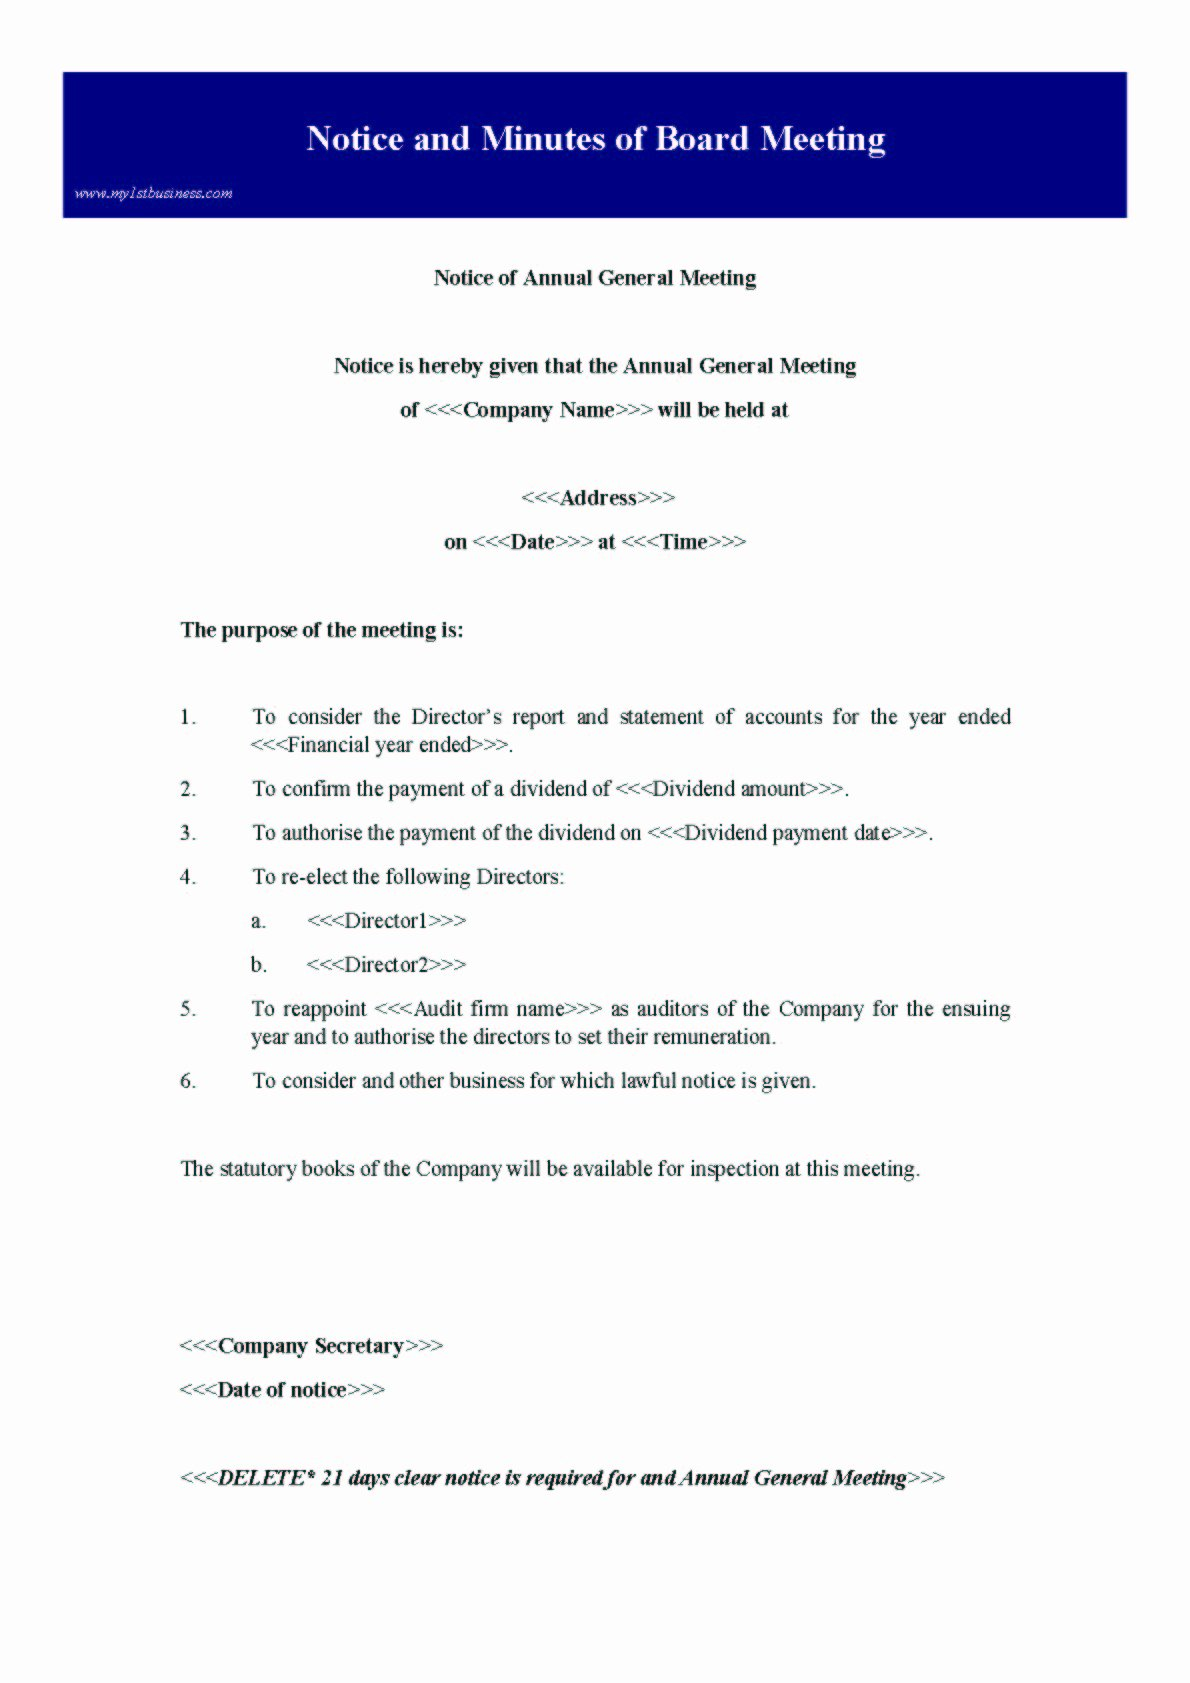 Notice Of Board Meeting Template Luxury Notice and Minutes Of Board Meeting Preview